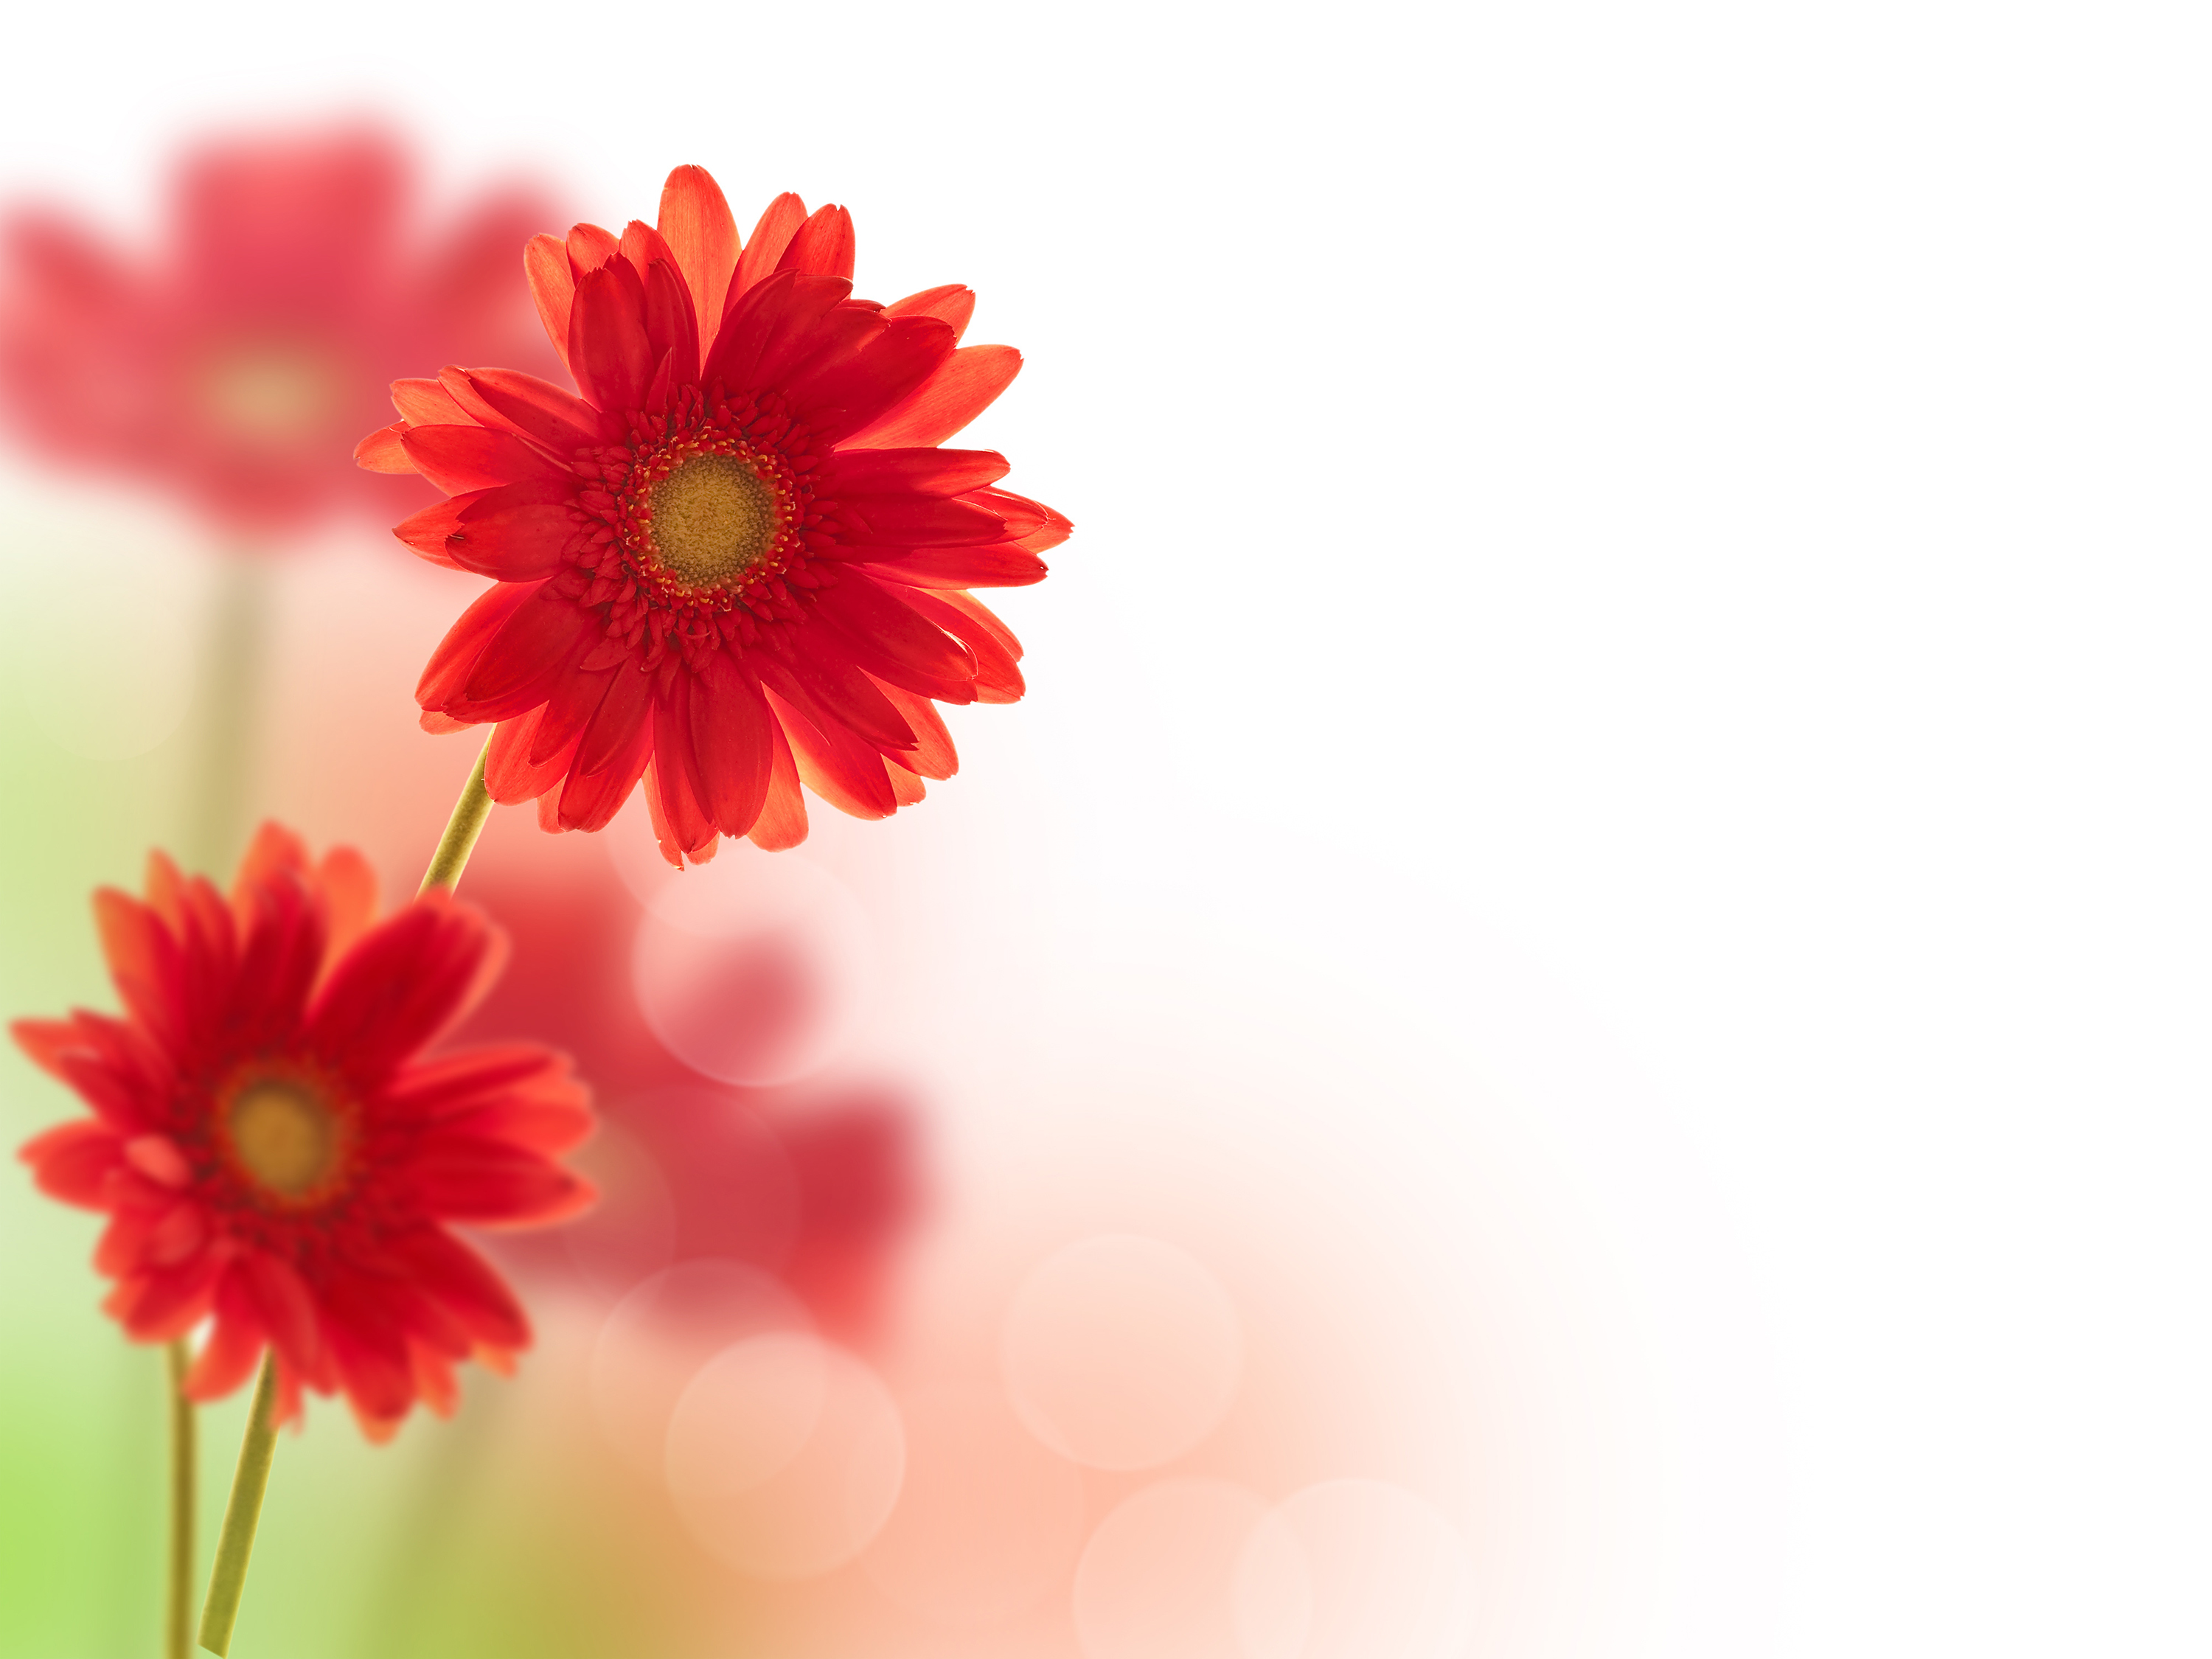 Red daisy flower 55578